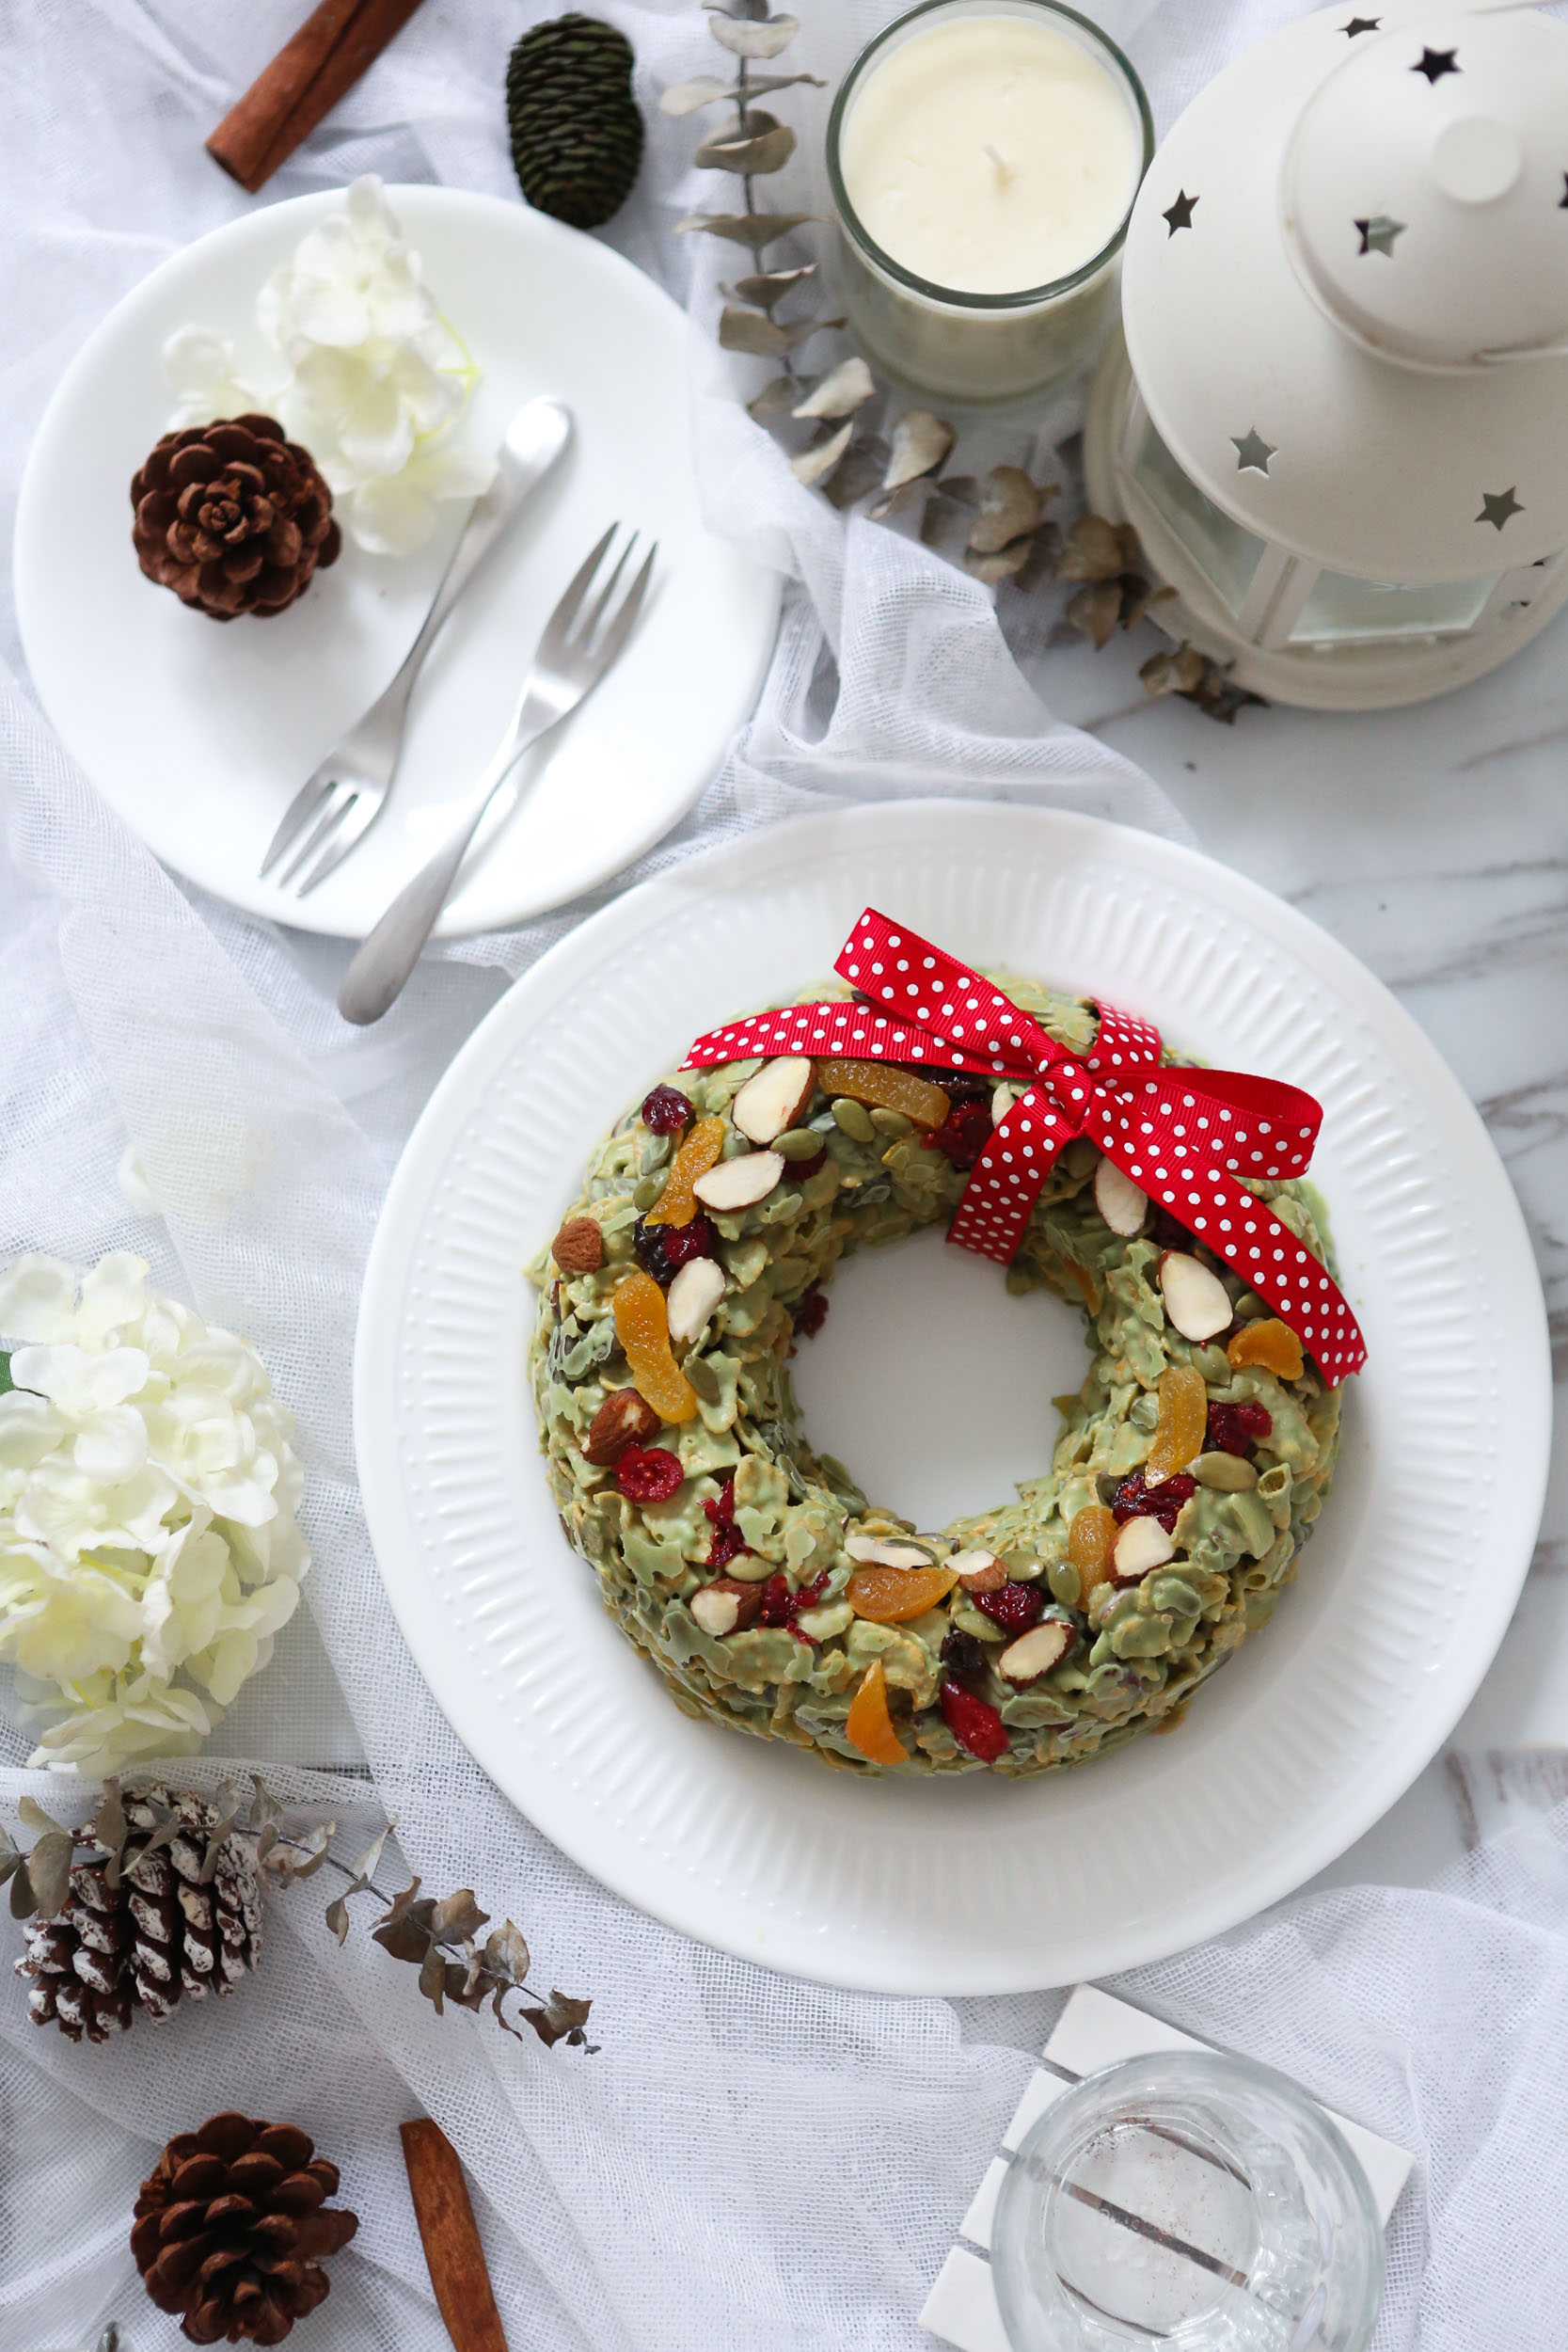 Green Tea Chocolate Cornflakes Wreath - $38Green Tea infused white chocolate, Cornflakes, assortment of dried cranberries, apricot, sultanas and lightly toasted slivered almonds and pumpkin seeds